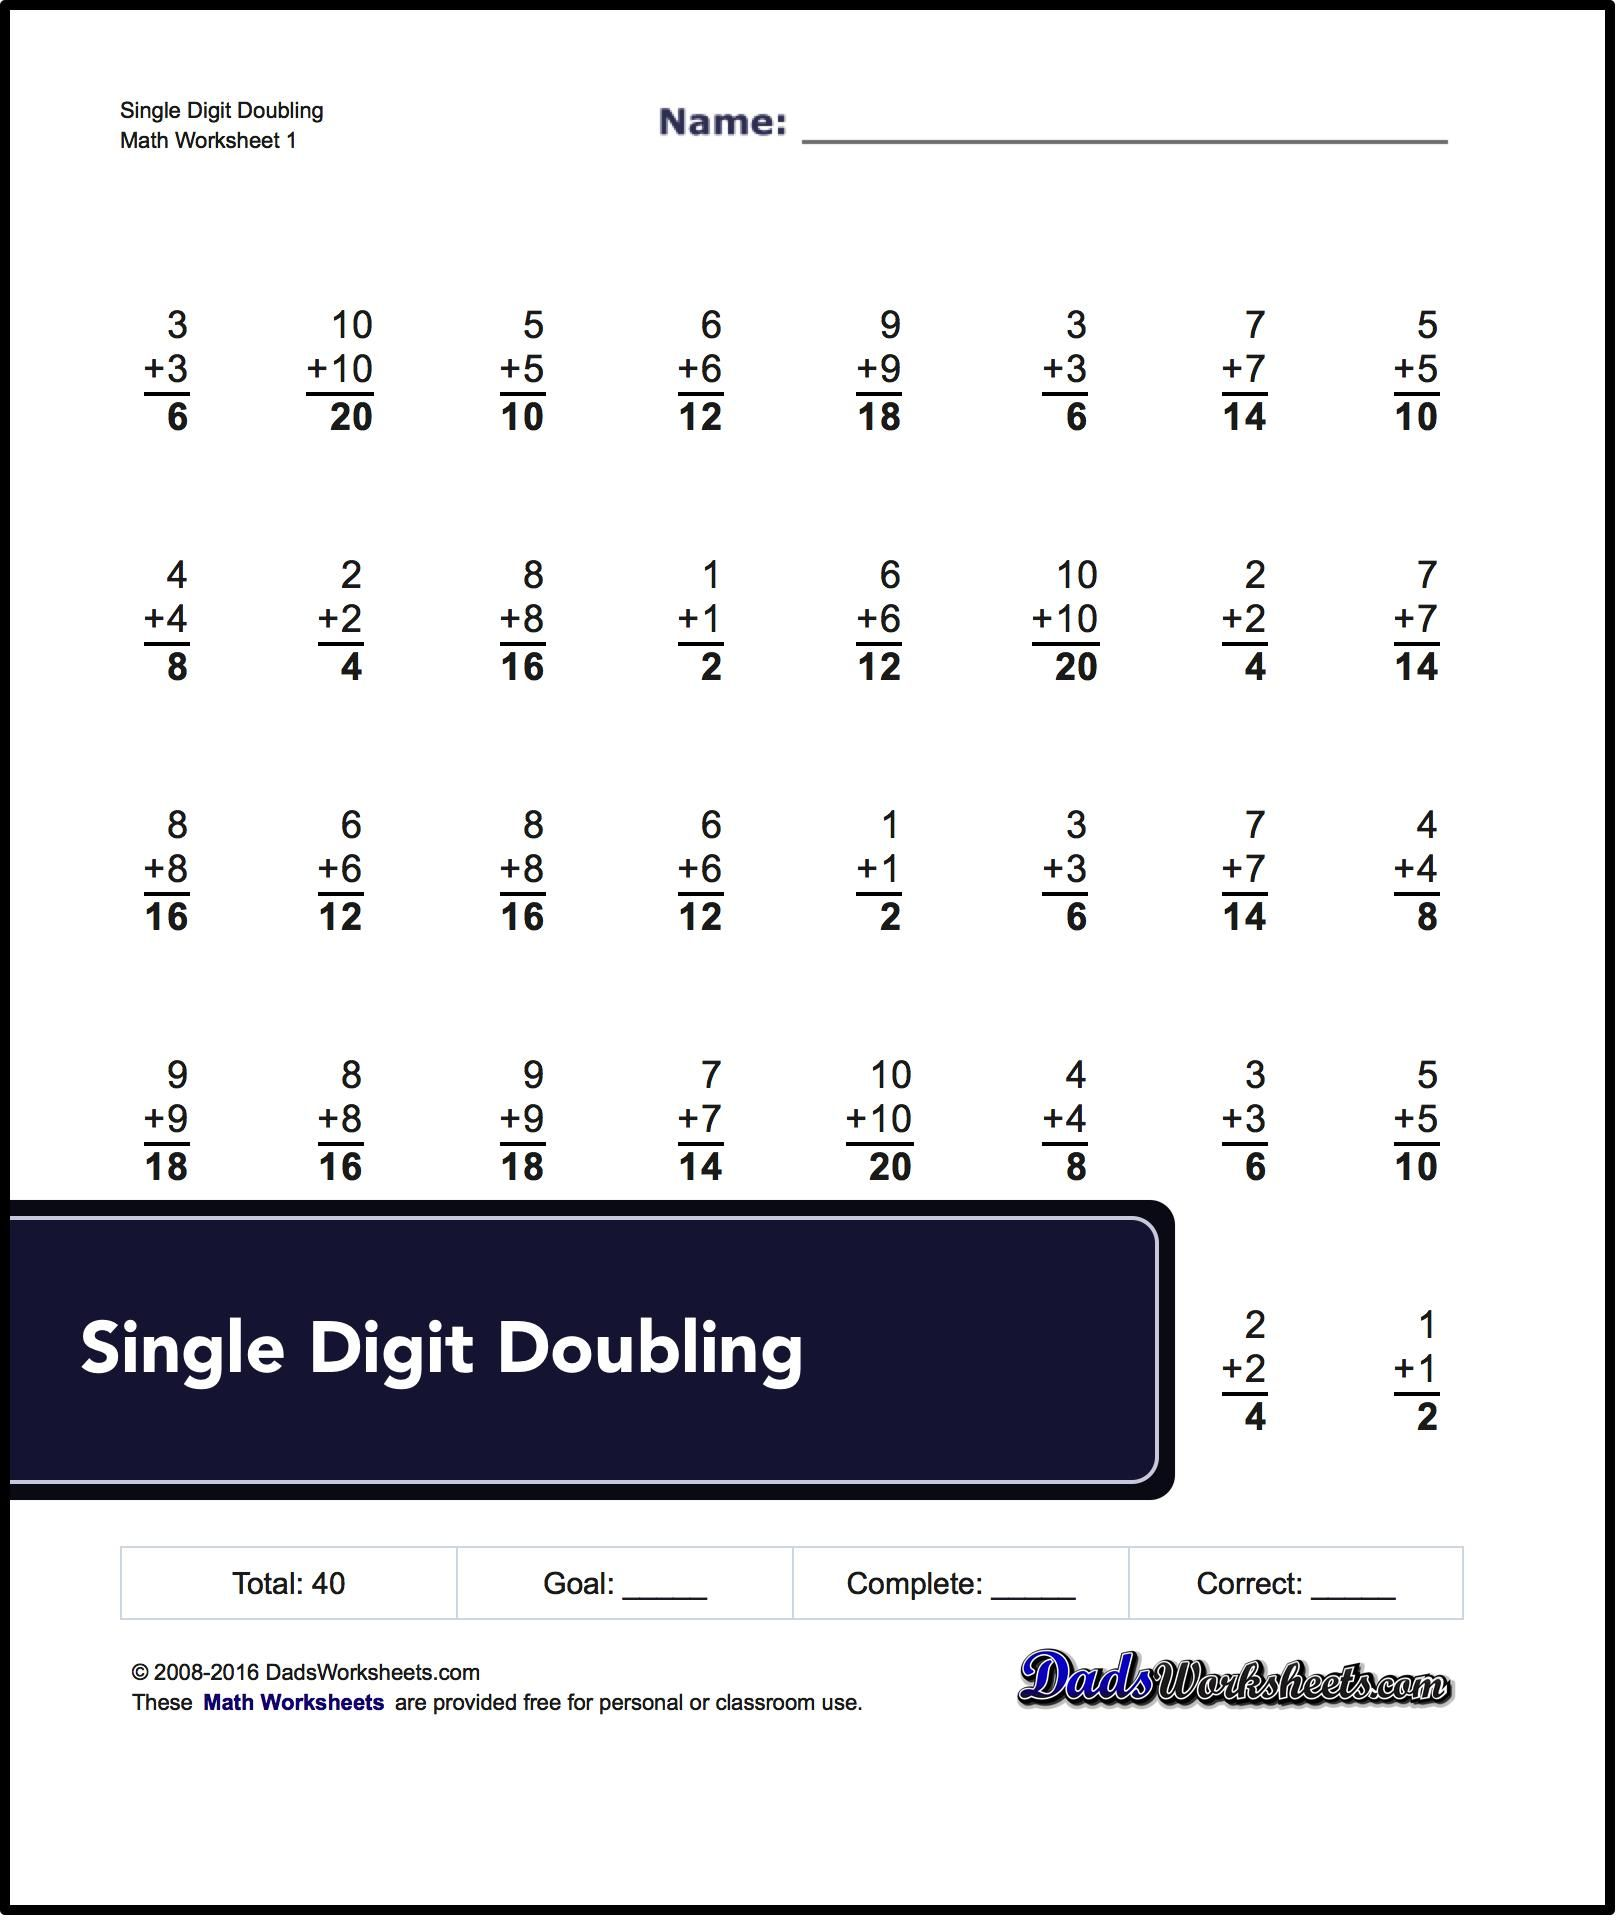 worksheet Single Digit Addition Problems practice addition worksheets for doubling values includes single digit two digit